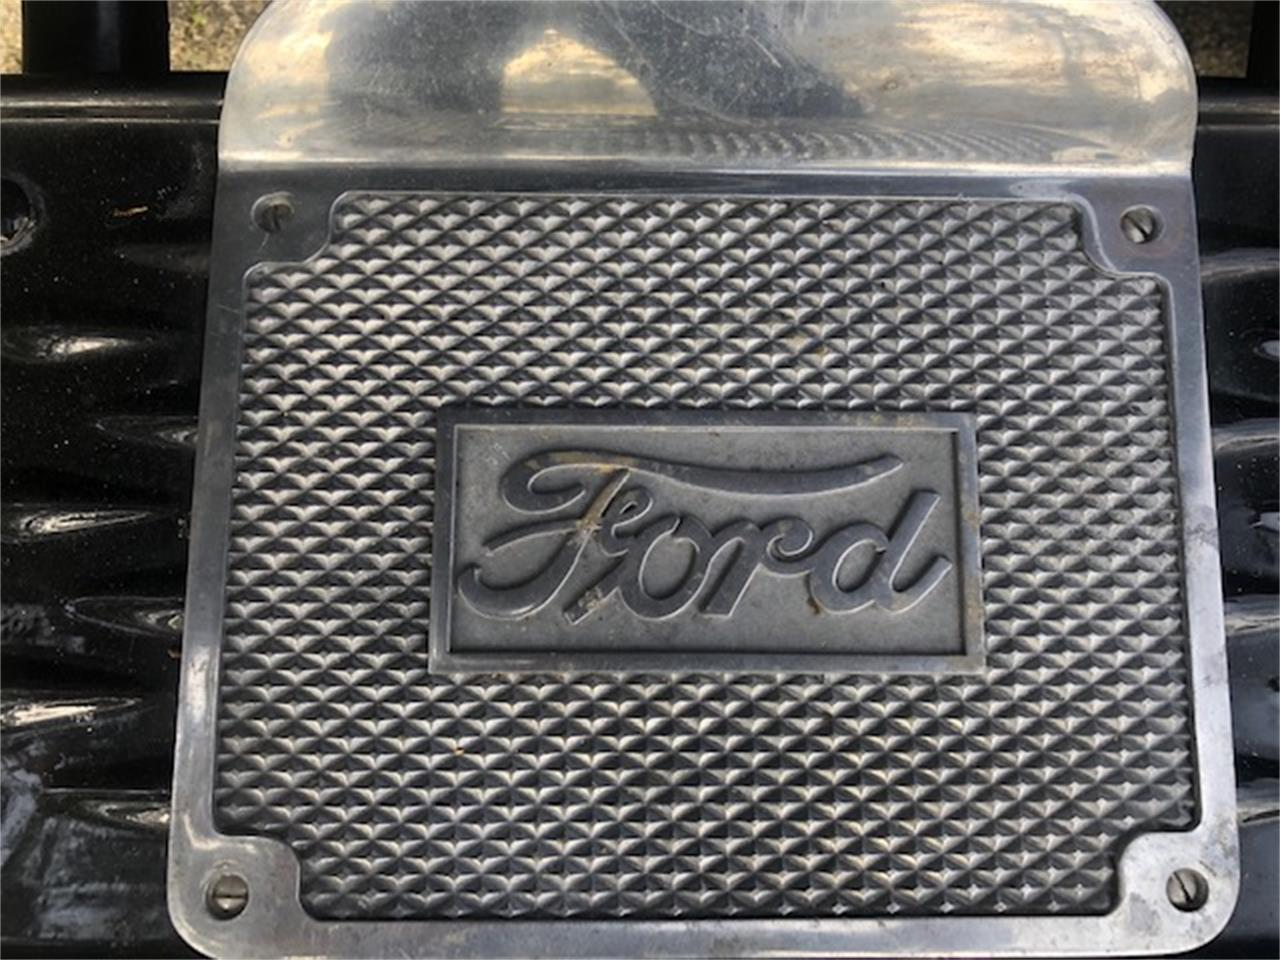 1919 Ford Antique (CC-1334004) for sale in Cornwall, New York